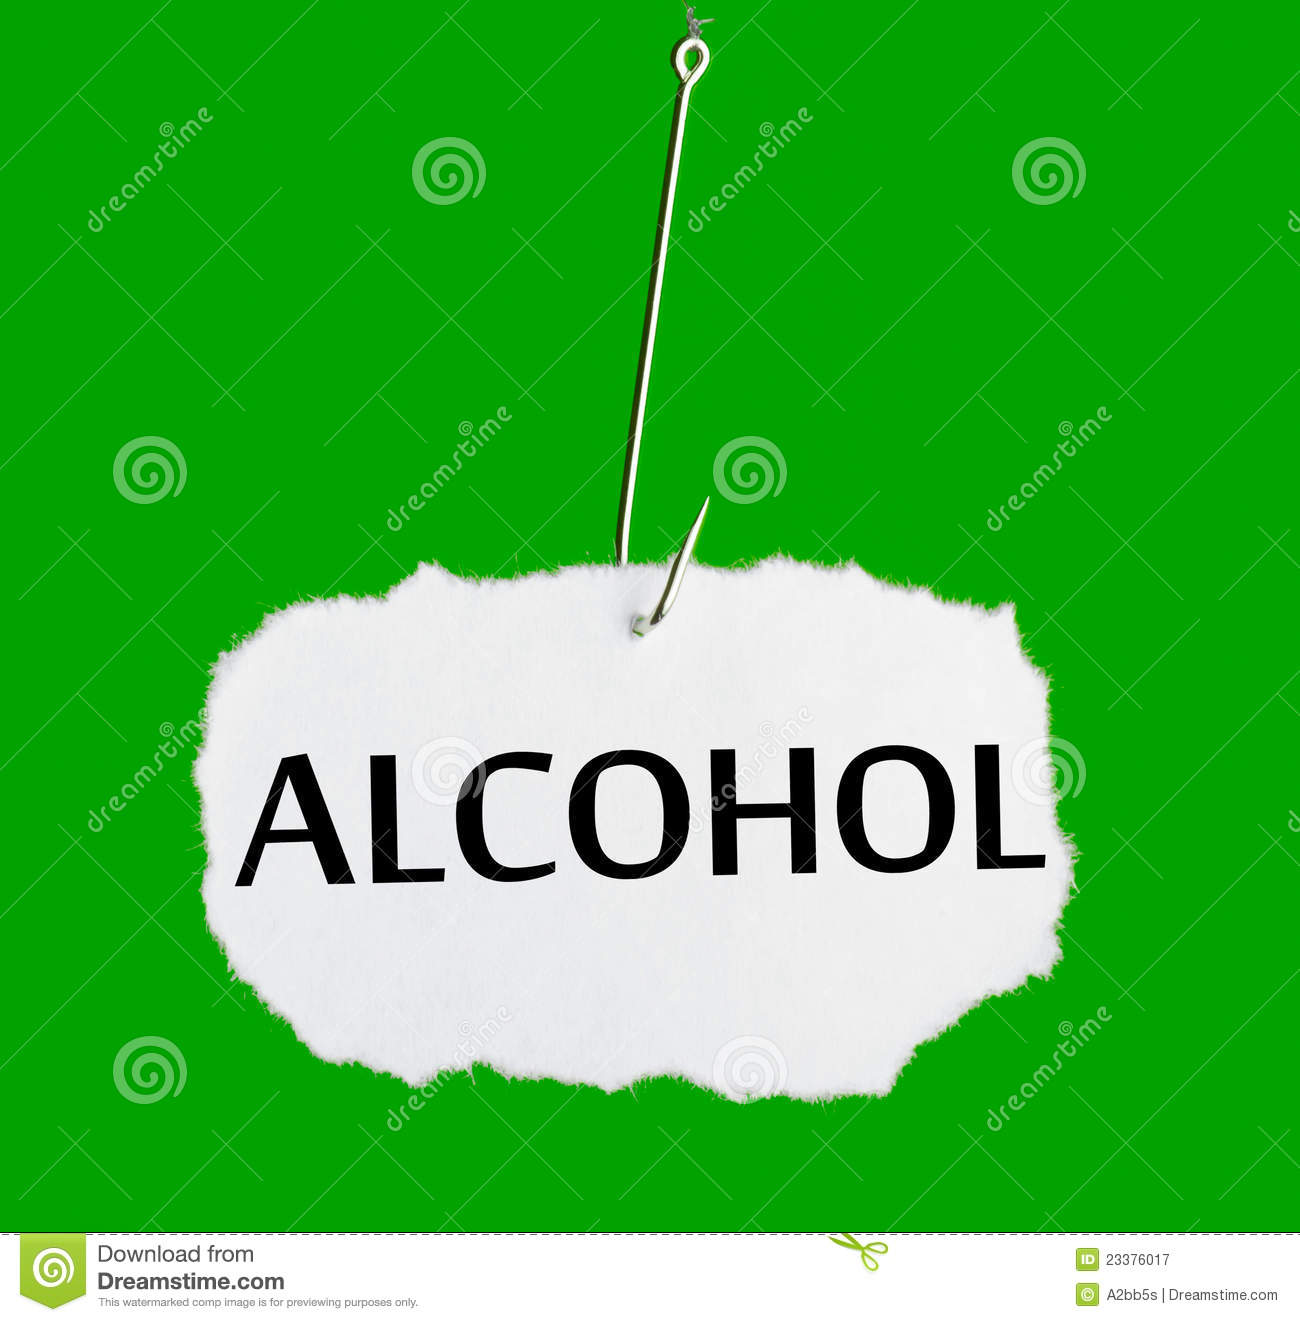 an analysis of alcohol in world The global status report on alcohol and health (2011) presents a comprehensive  of alcohol consumption, alcohol-related harm and alcohol policies in the world health.